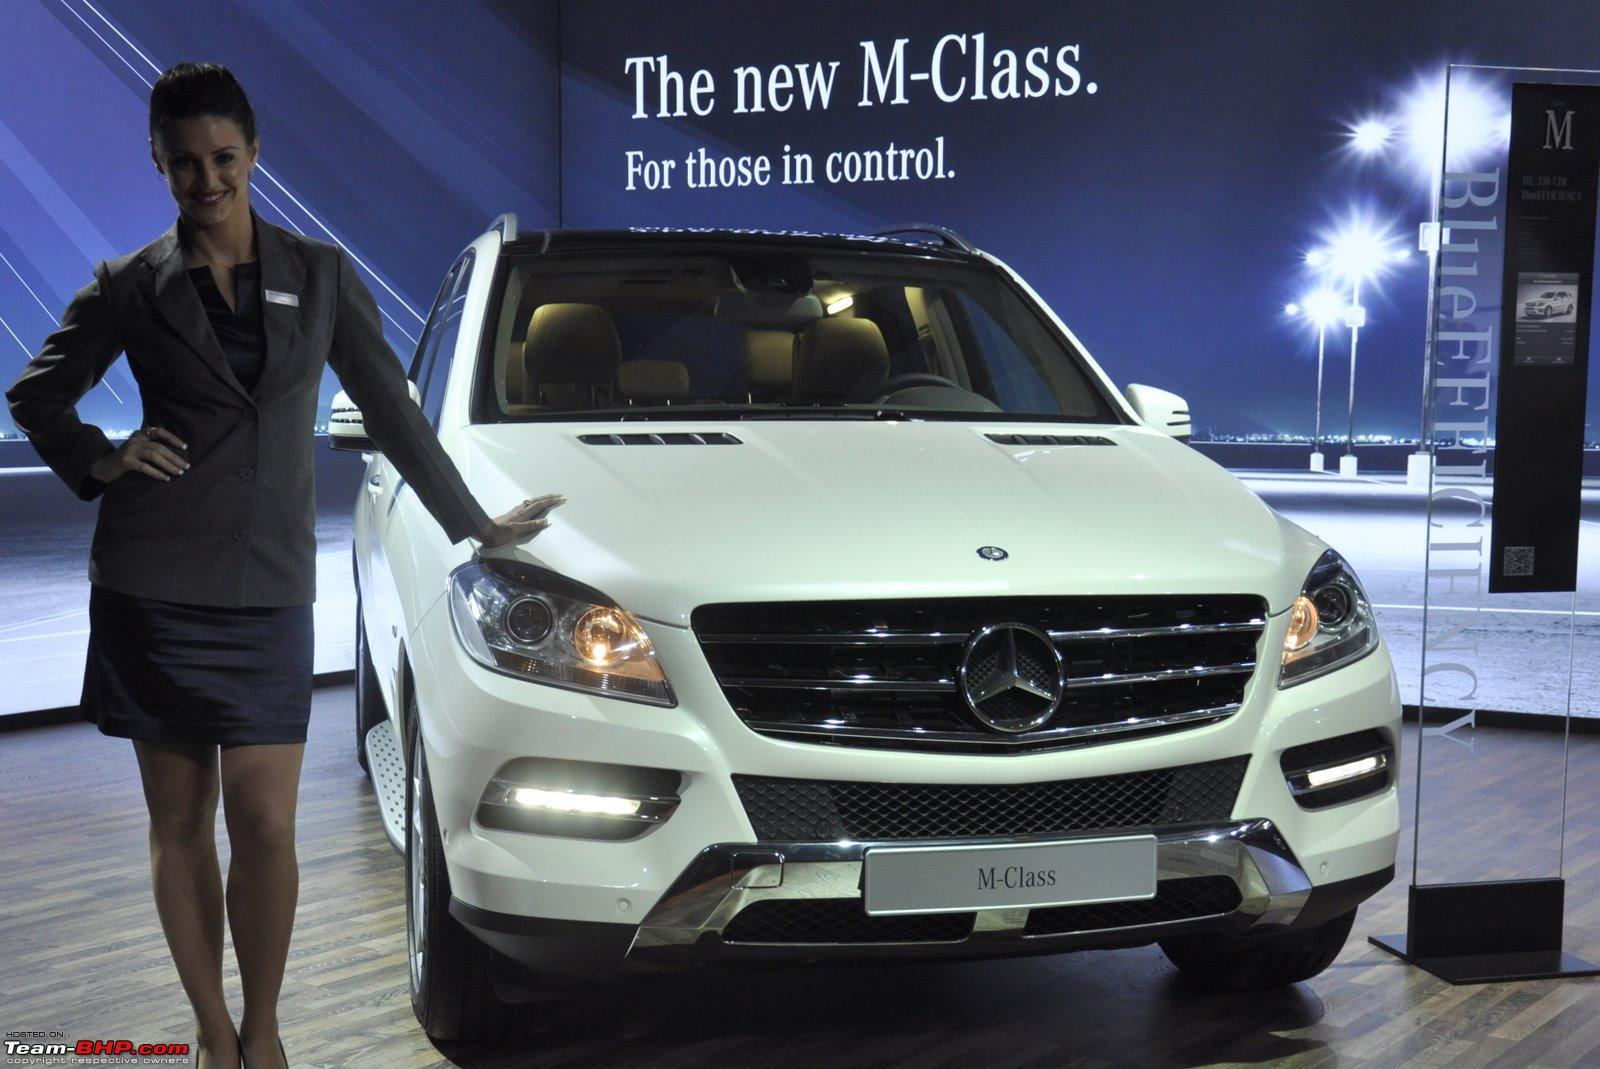 the new mercedes m-class (w164) launched - starting at rs. 56,90,000